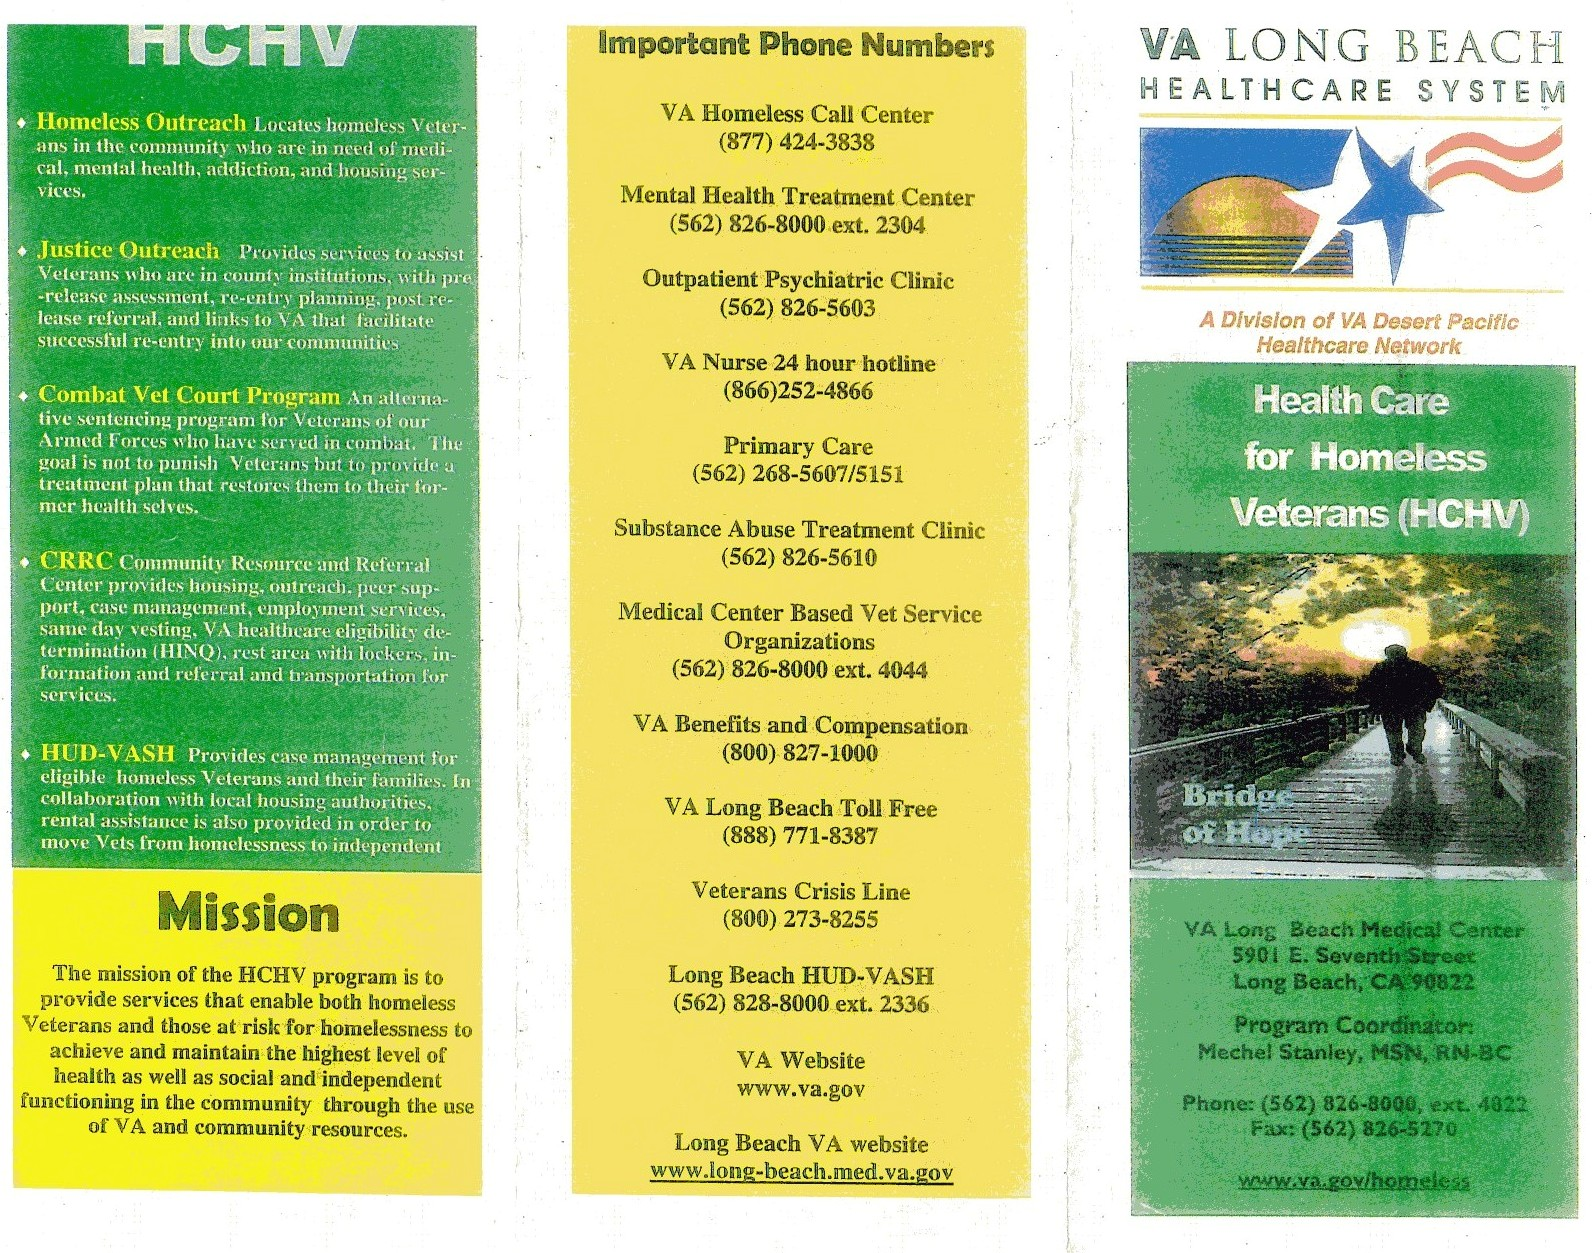 Brochure-Homeless001.jpg